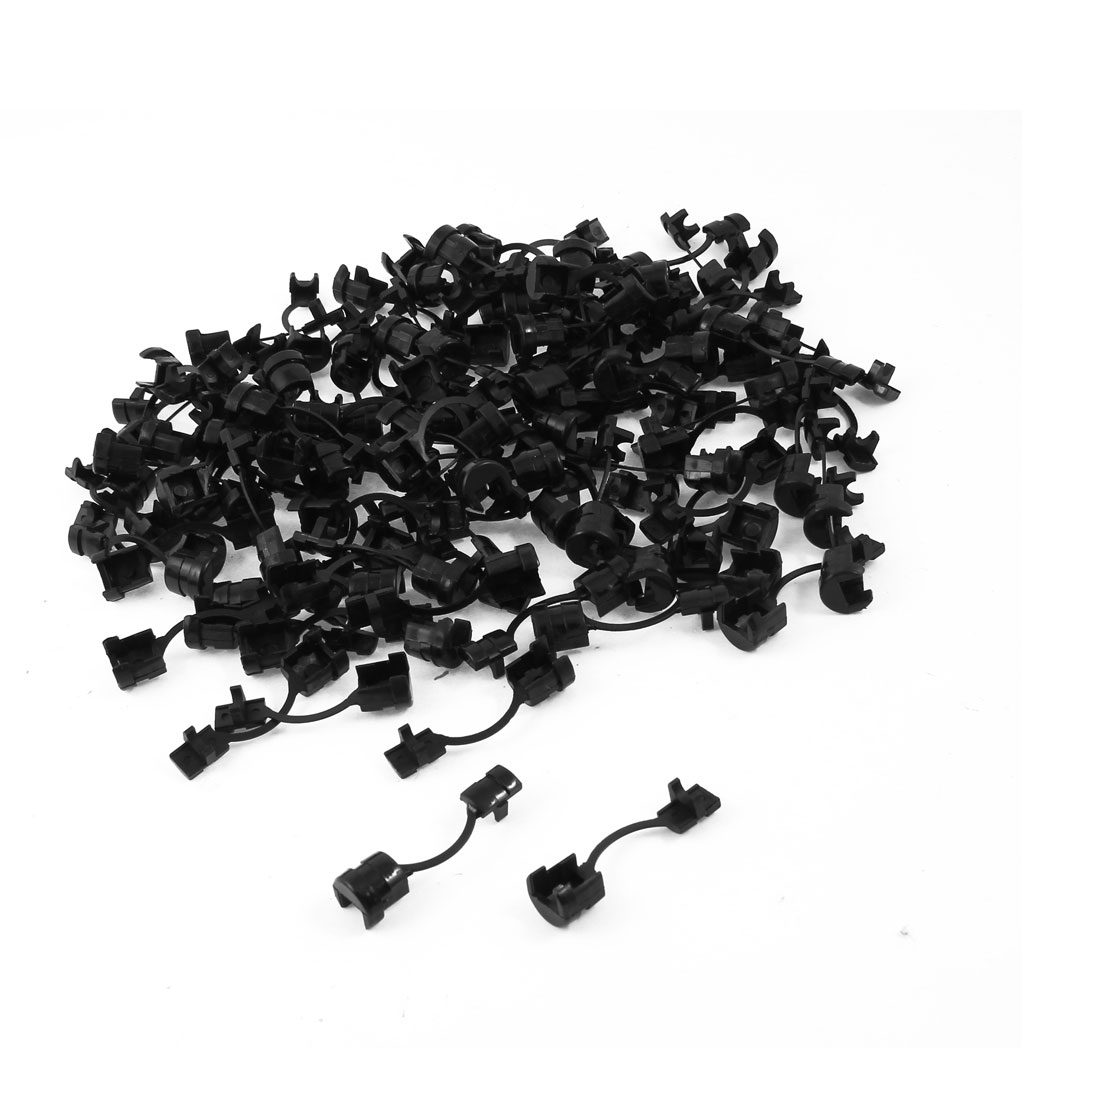 200 Pcs Black Cord Protectors Strain Relief Bushing for 5mm Round Cables